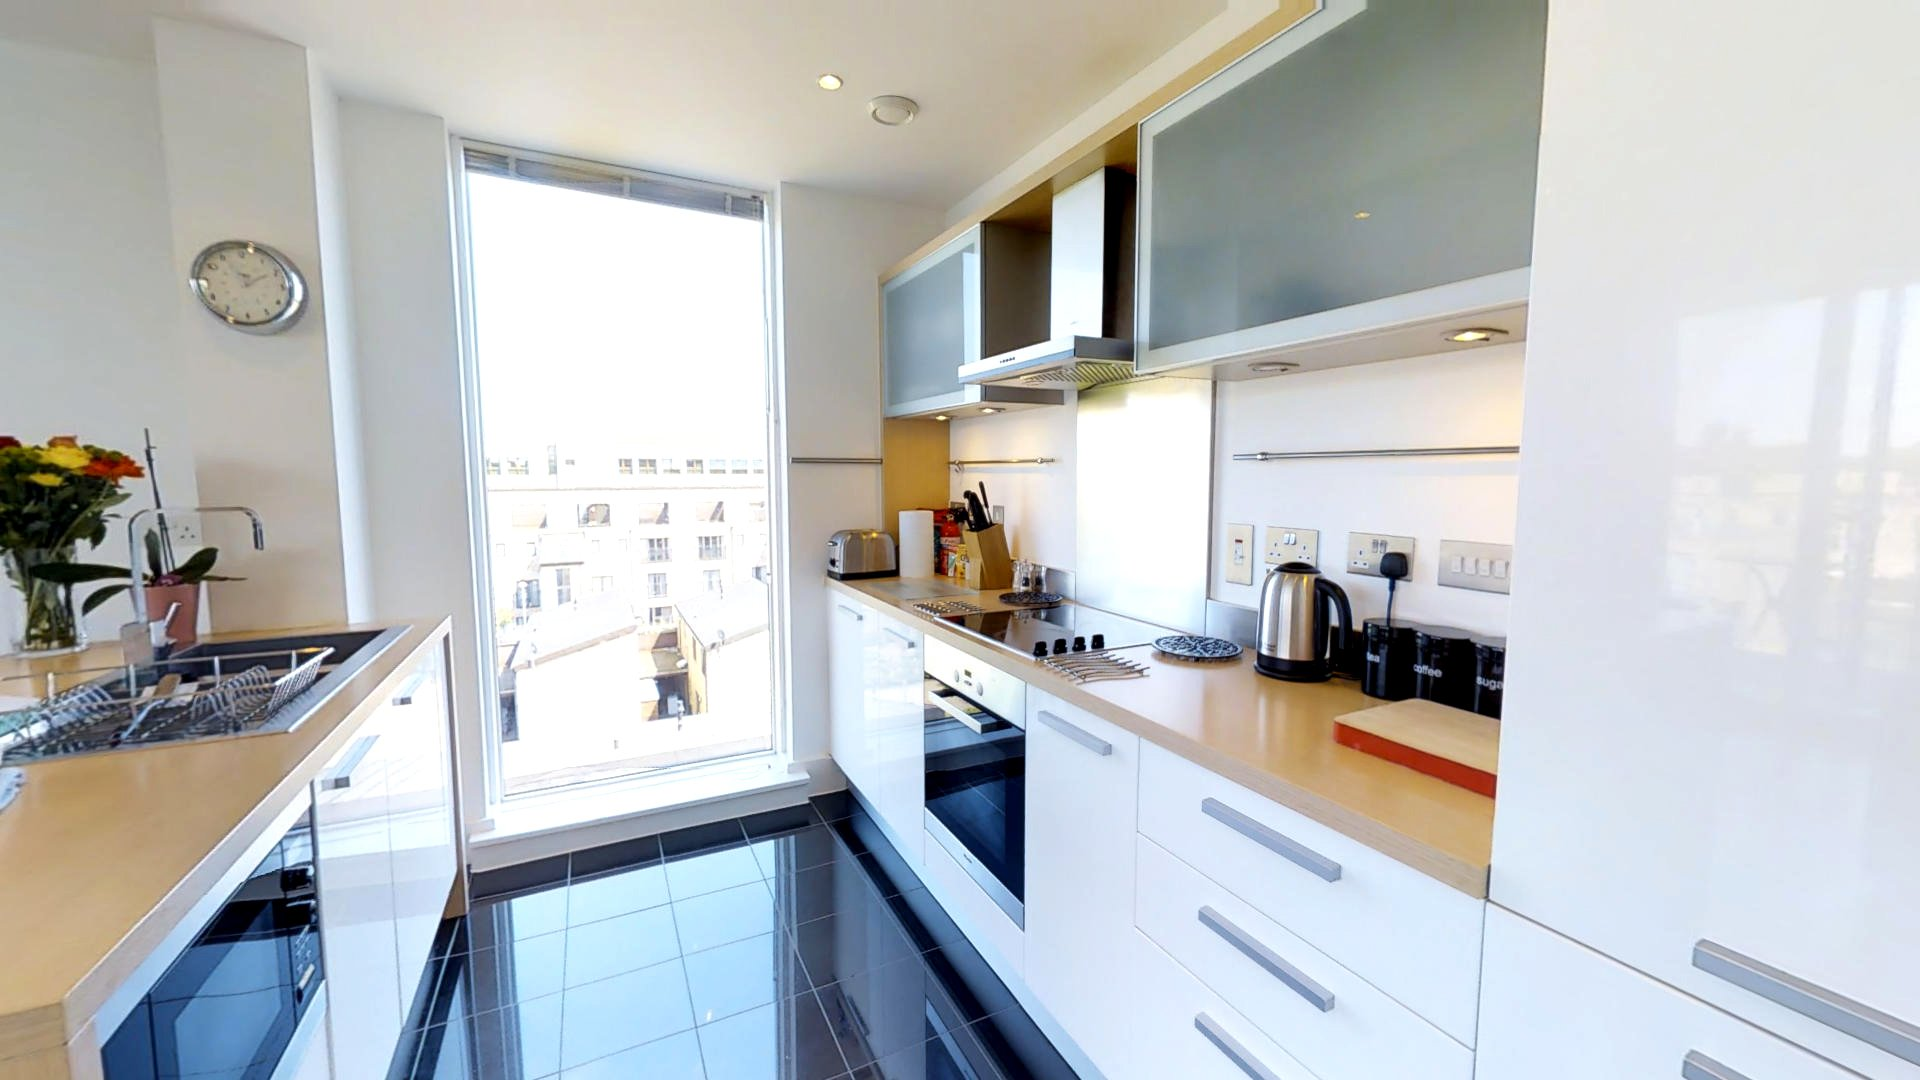 Serviced-Accommodation-Cambridge-available-for-Short-Lets-Now!-Book-Urban-Stay's-Luxury-Penthouse-near-Cambridge-University!-Free-Cleaning,-Wifi-&-Parking!-|-Urban-Stay